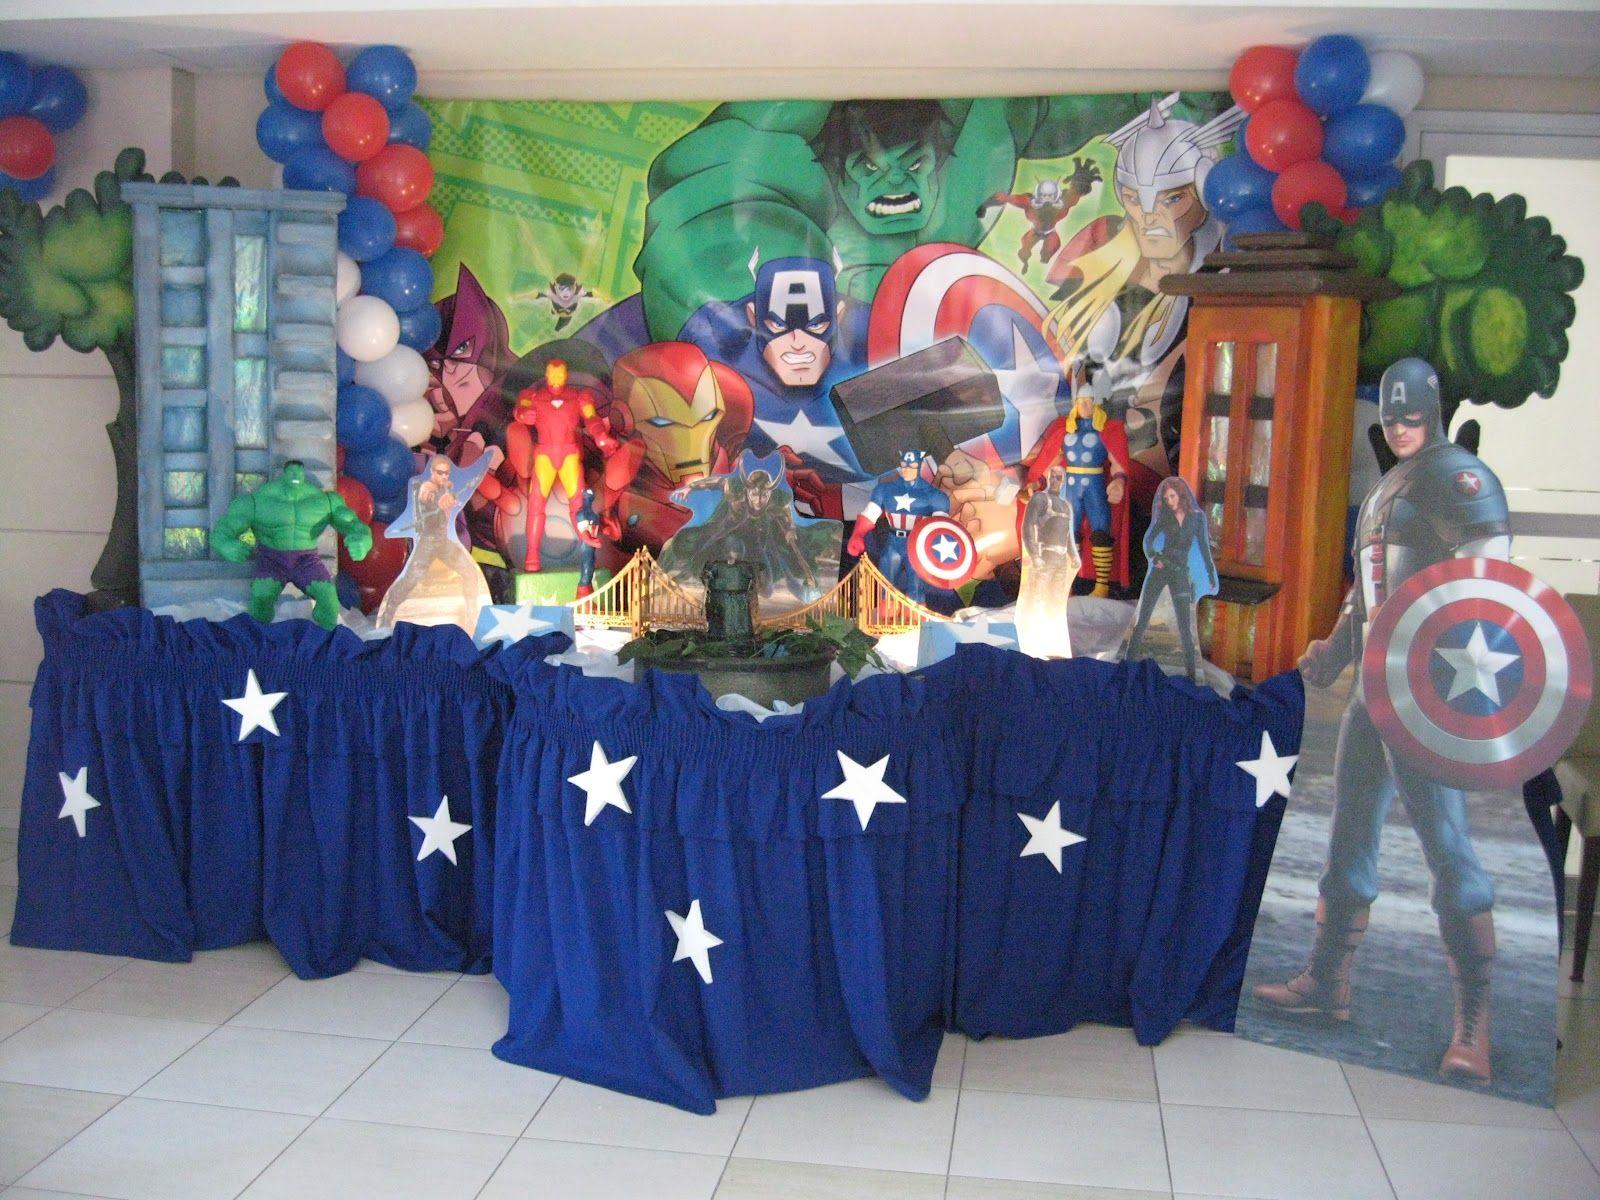 Avengers Party Decorations Avengers Party Decorations Avengers Party Ideas Pinterest